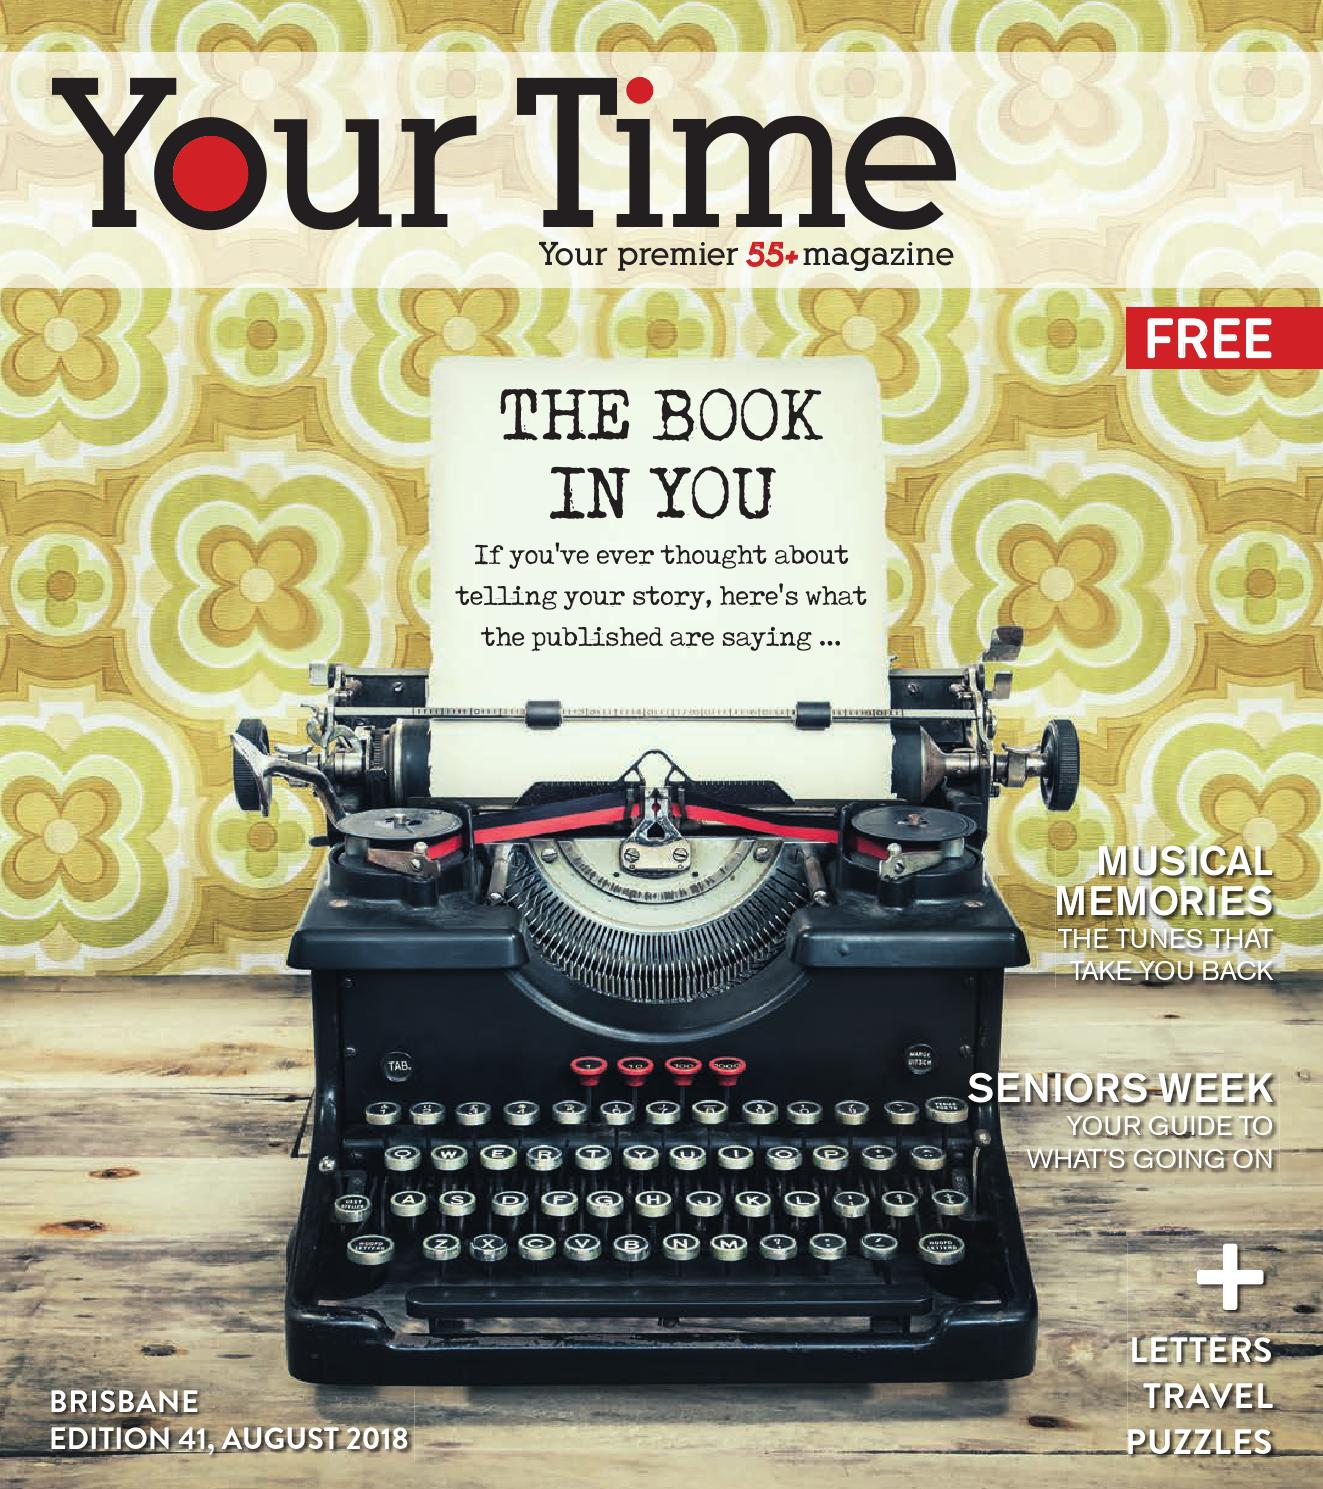 1912e605b2 Your Time Magazine Brisbane August 2018 by My Weekly Preview - issuu